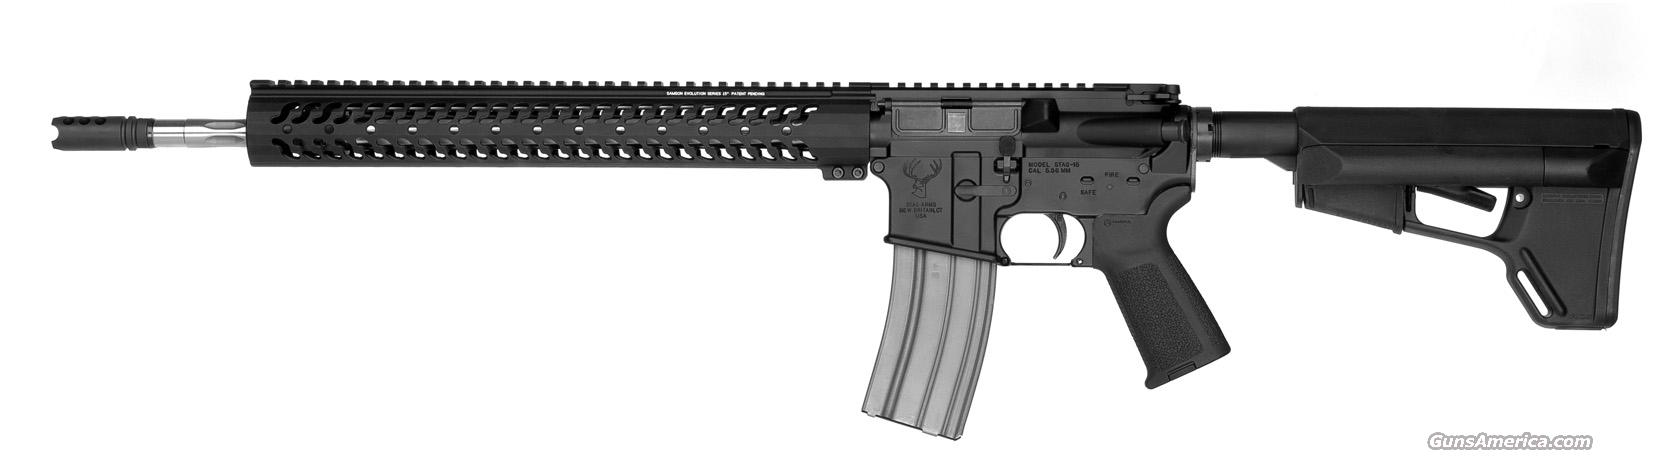 "Stag 3GL Competition 18"" Left Hand *NEW* Sampson Geissele MagPul  Guns > Rifles > Stag Arms > Complete Rifles"